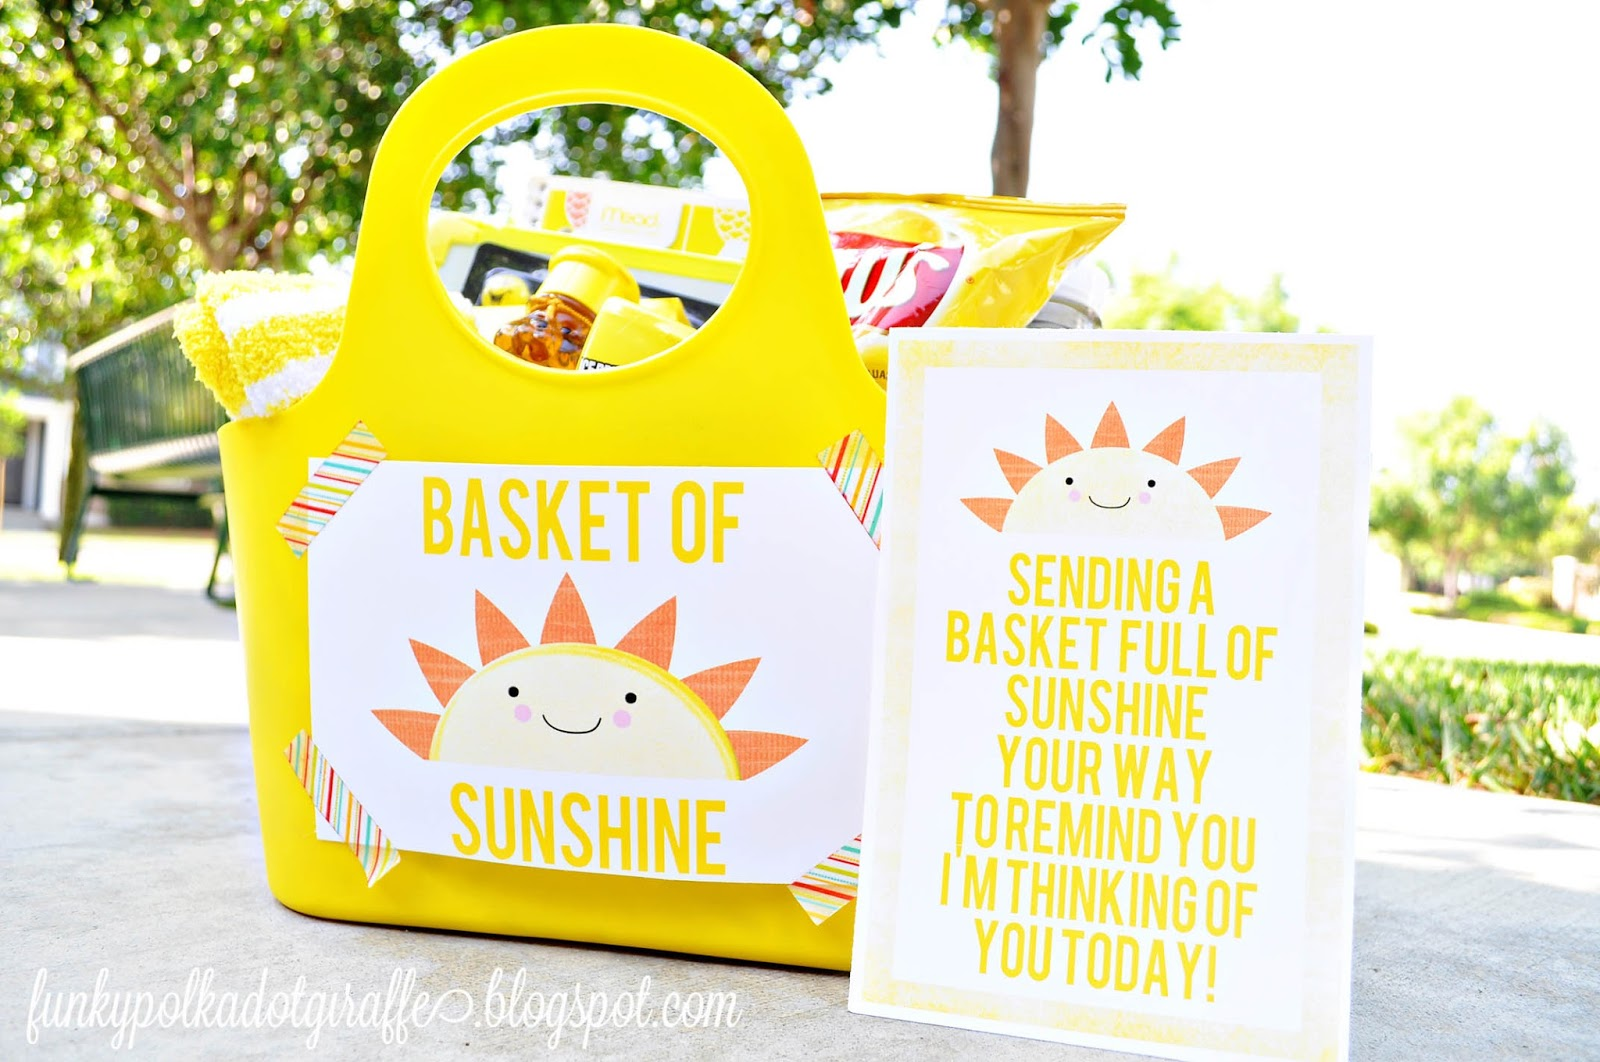 photograph regarding Basket of Sunshine Printable identify Funky Polkadot Giraffe: Basket of Sun Present with Printables